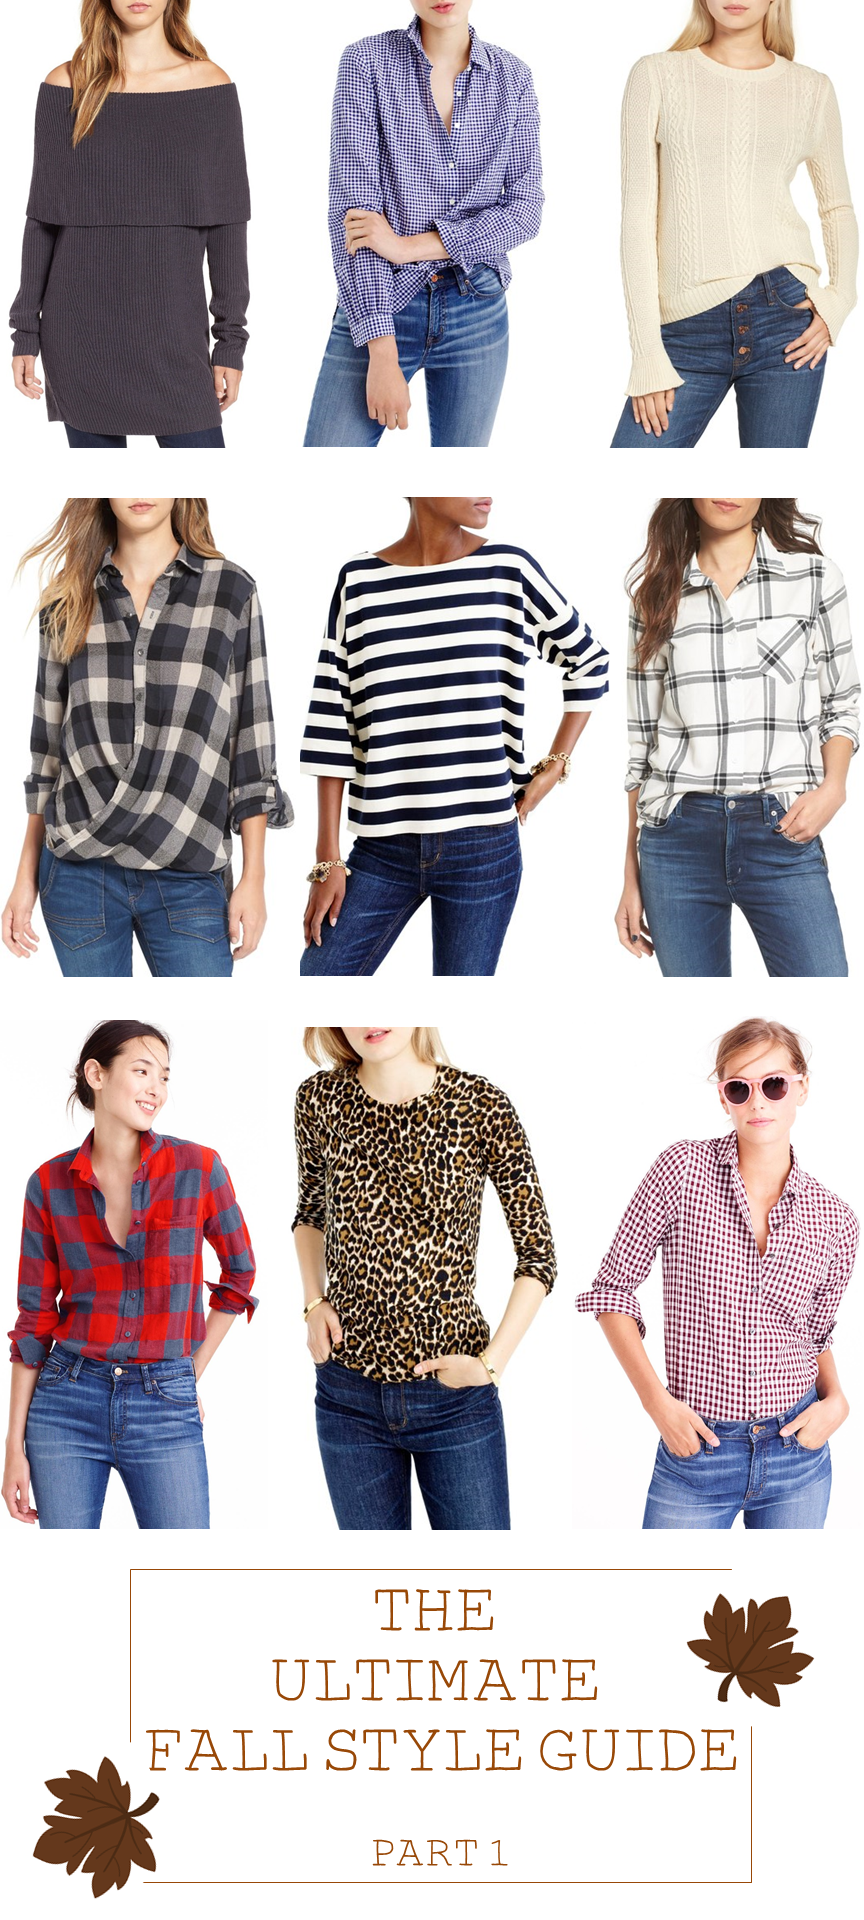 Beautifully Seaside - fall style guide with lots of plaid